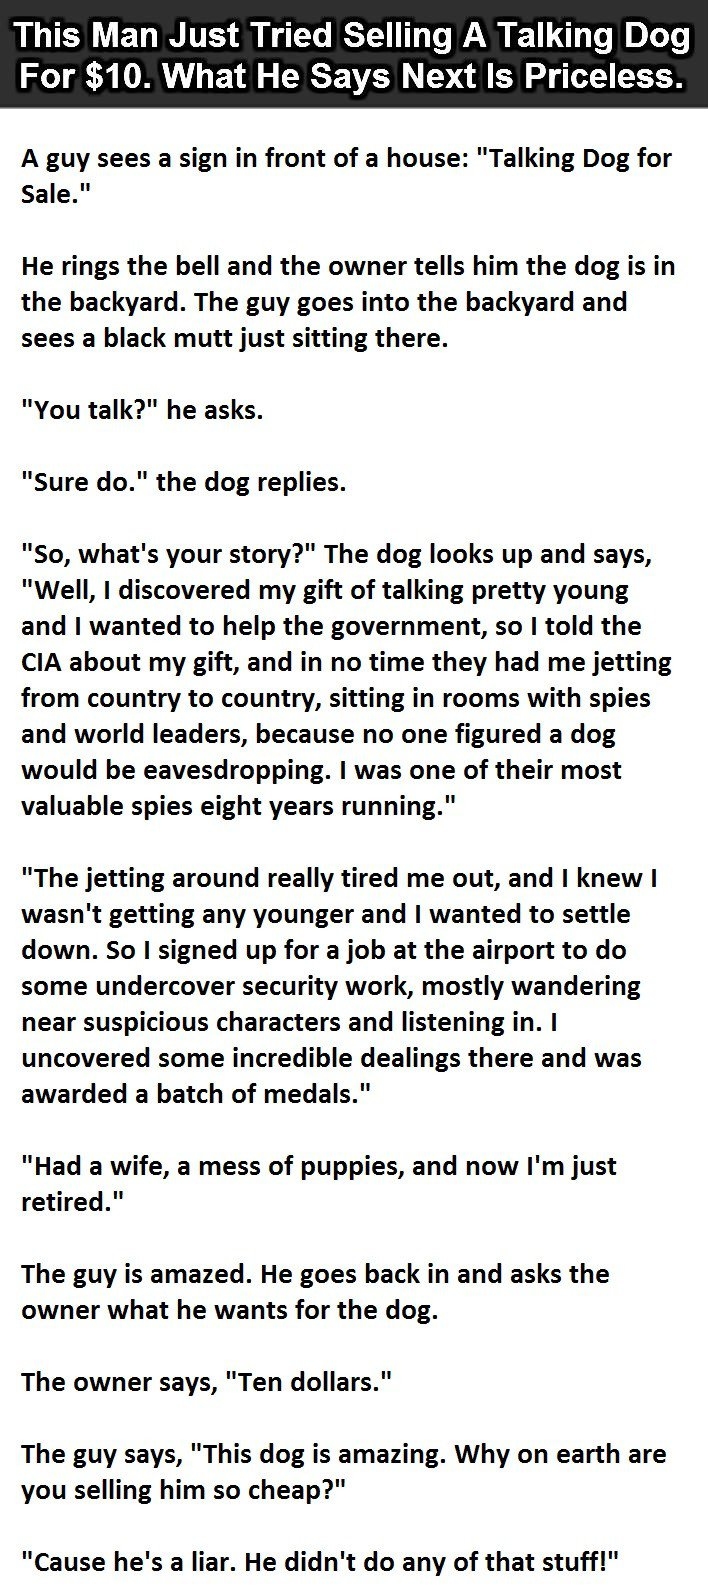 dog, sell, talking, house, sale, mutt, CIA, truth